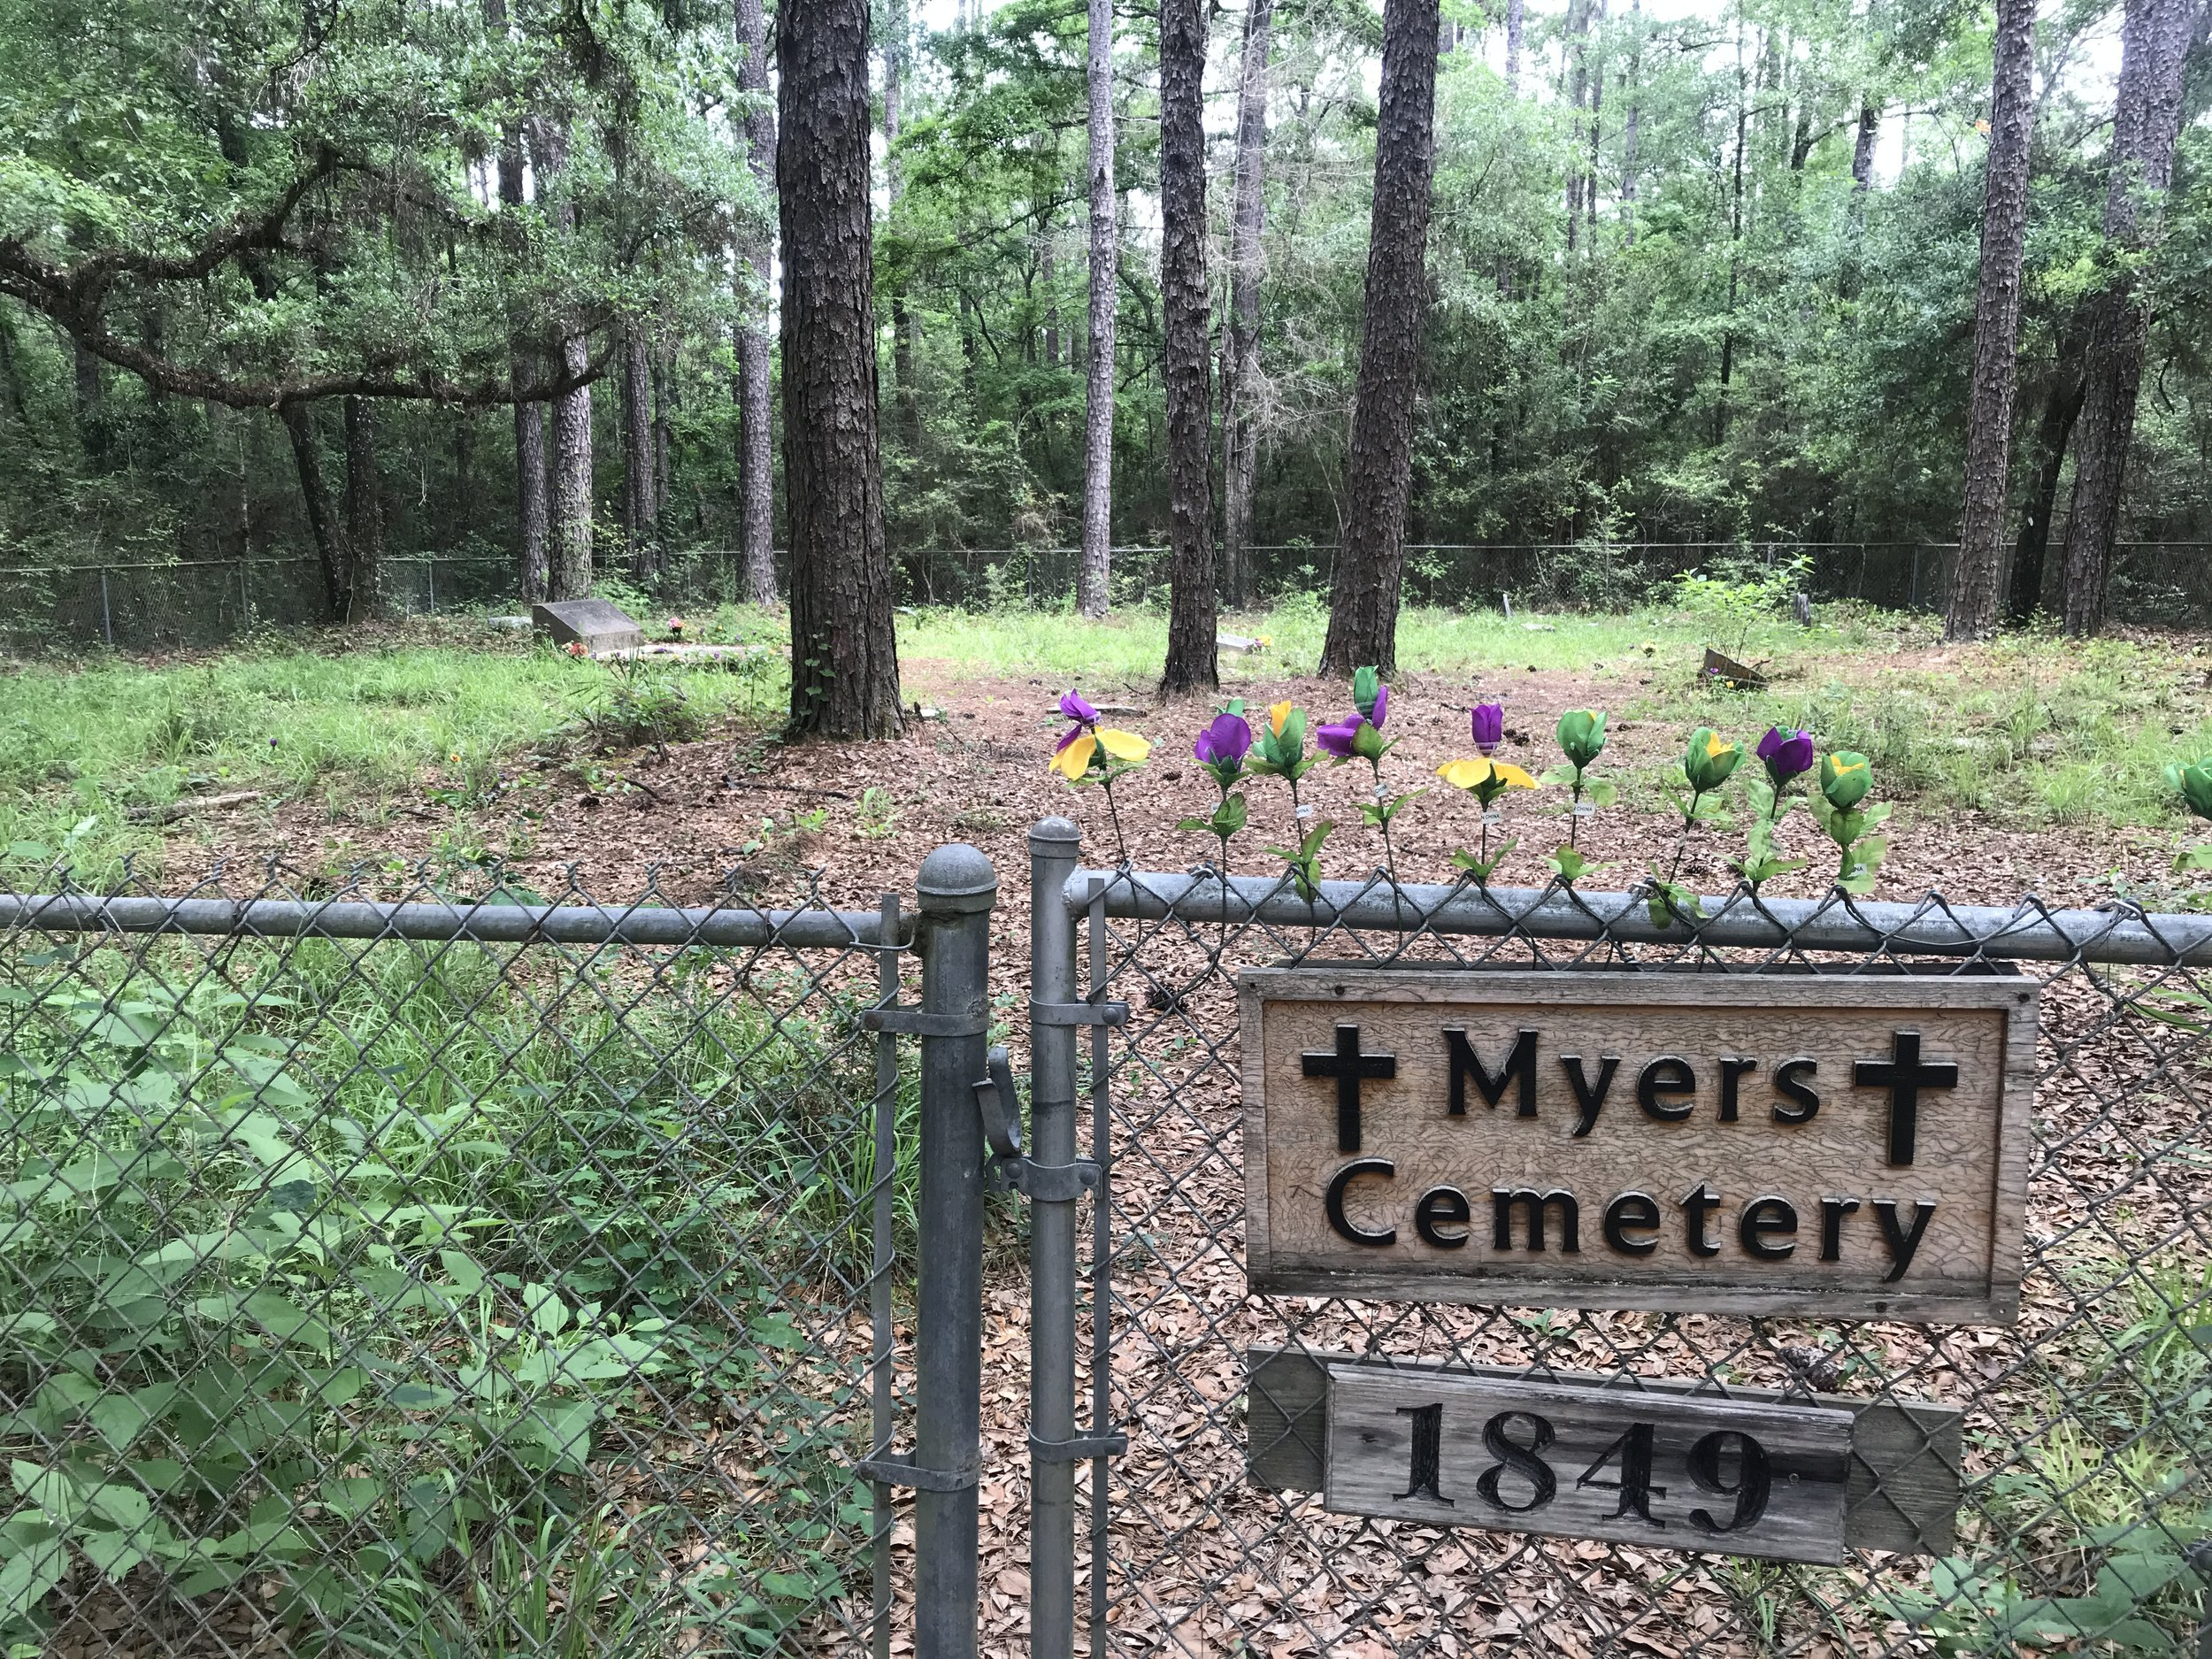 There was a cemetery along our hike. According to the history of  Chickasabogue Park , Frederic Daniel Myers died and was buried in the Myers Cemetery within the park on November 16, 1866.